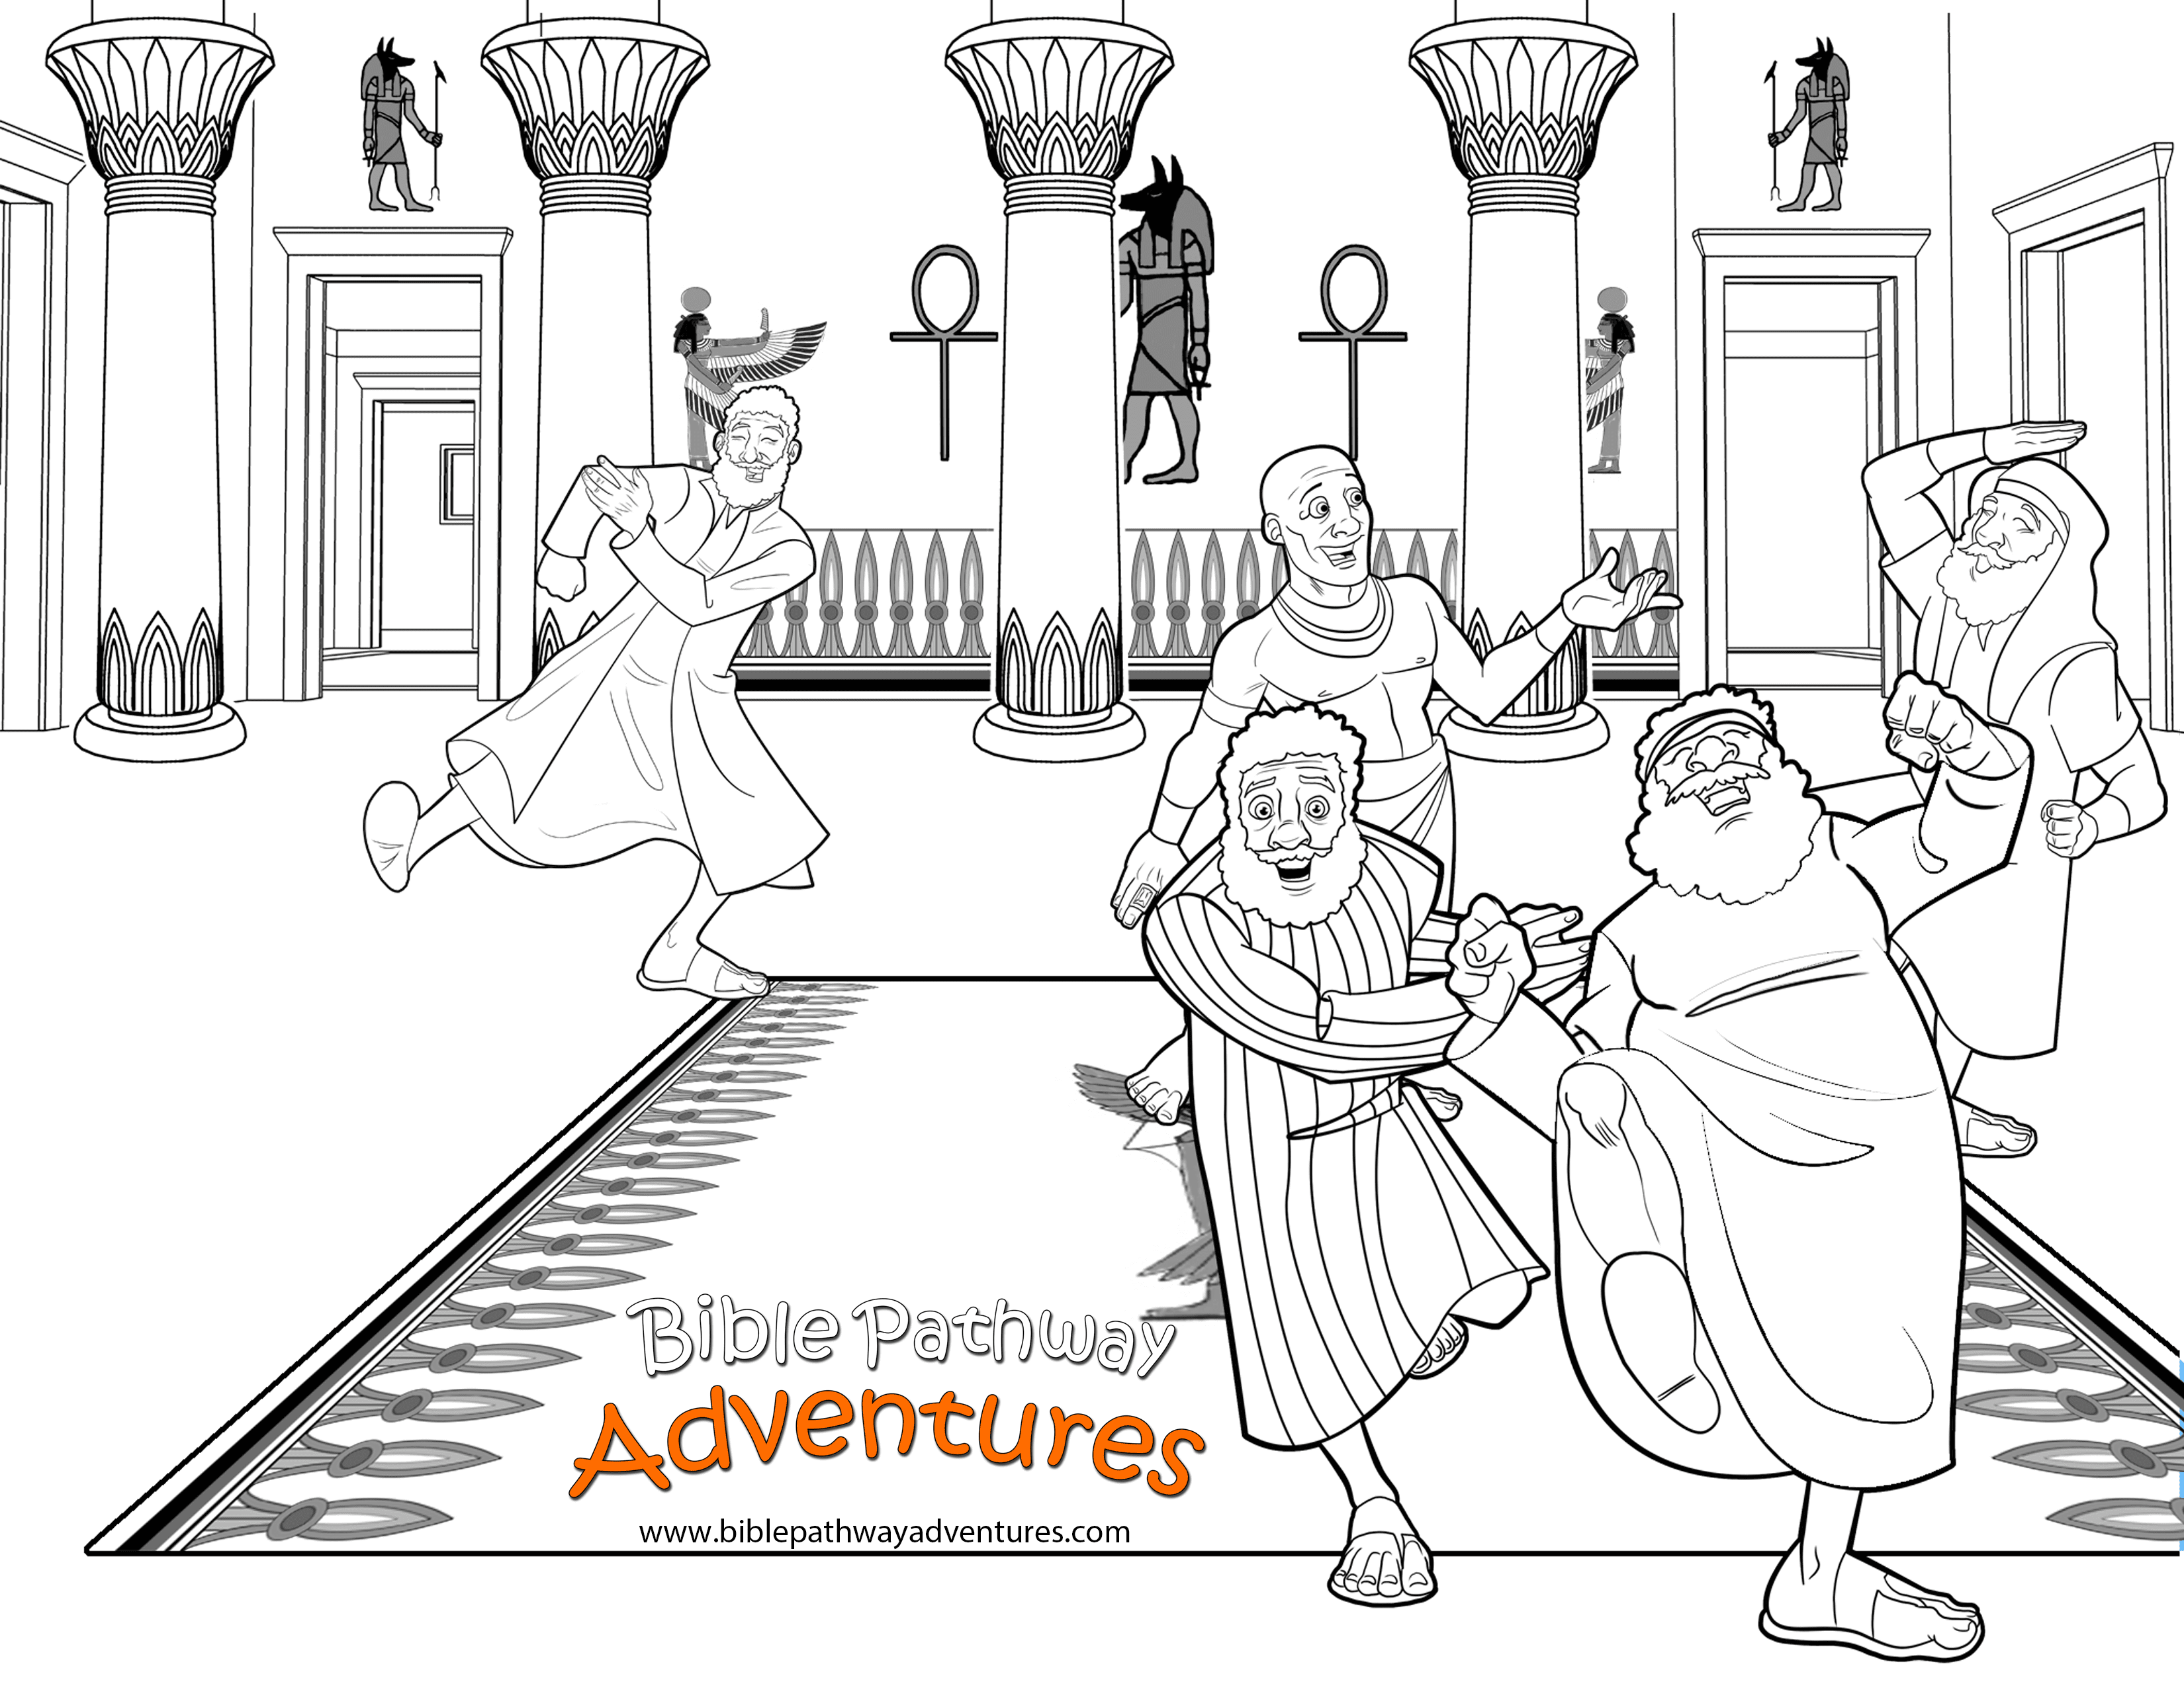 Free bible coloring page joseph reunited with brothers for Bible coloring pages joseph